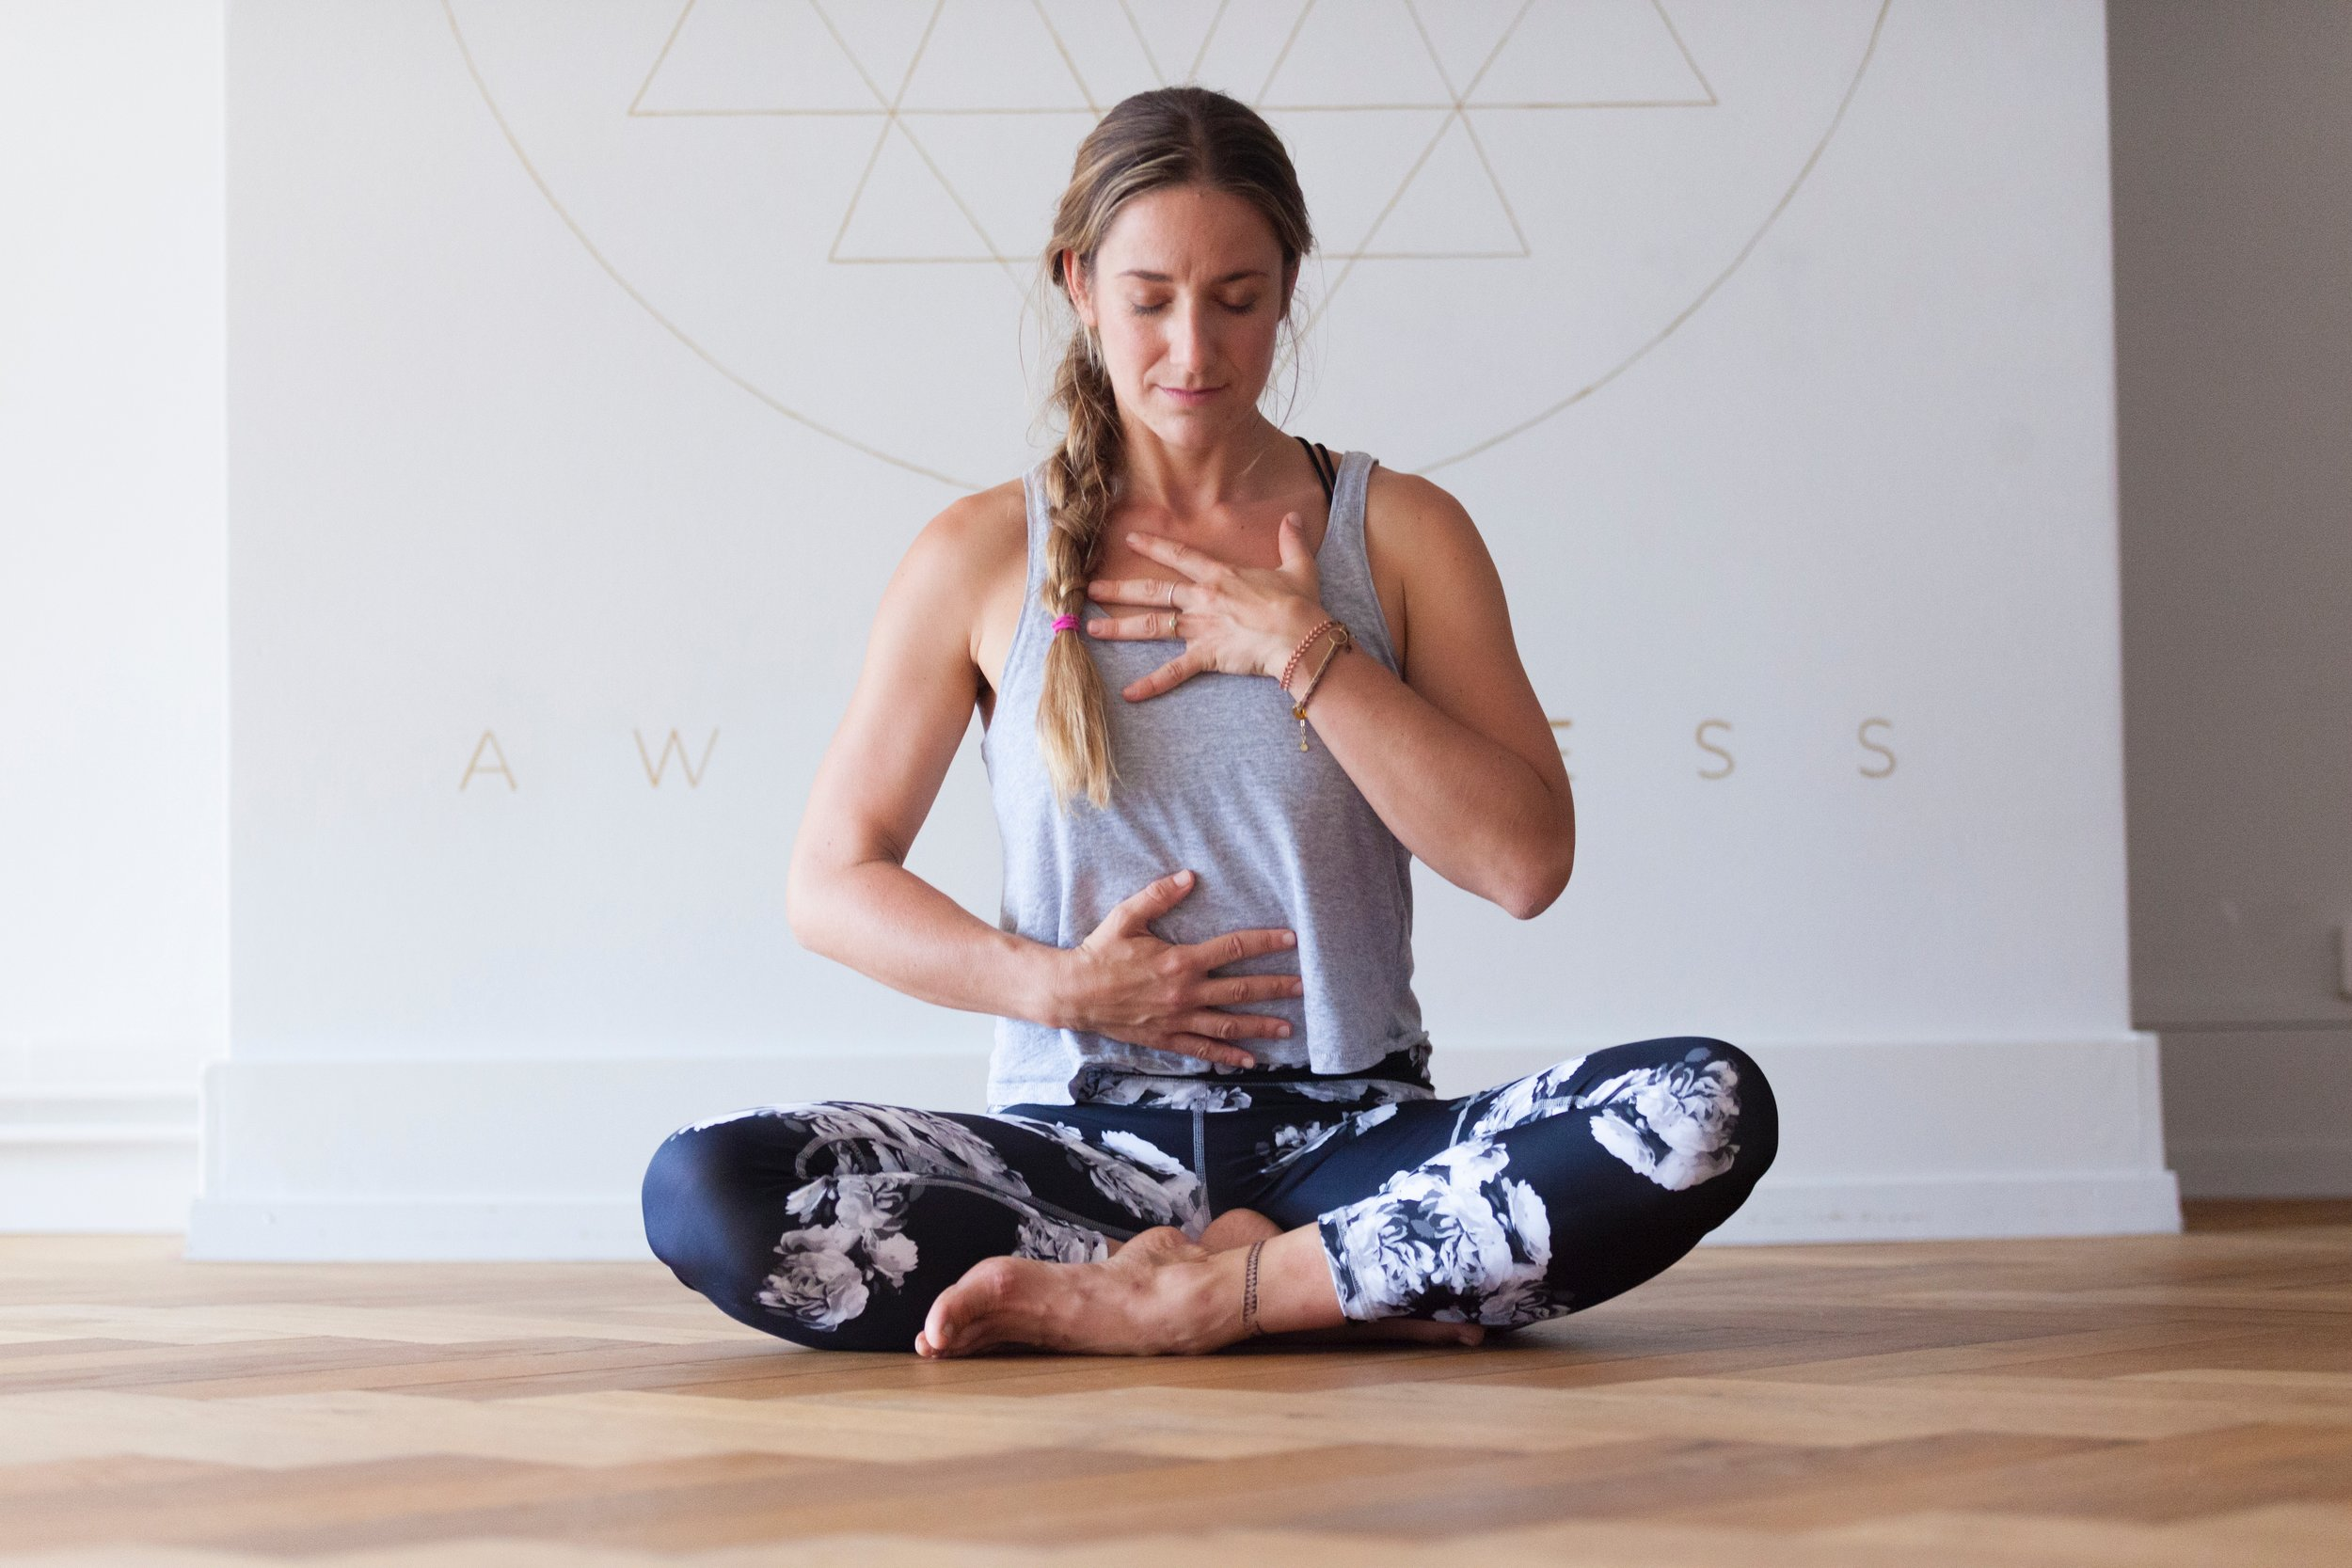 Om Before Home - Mondays 6:30 - 7:30pm & Wednesdays 4:30 - 5:30pmThrough this class we invite you to find awareness, release and inner peace through movement and breath. Accessible to all levels, including beginners, gentle & dynamic flow is combined to help find alignment in our bodies, and within ourselves.Each class will begin by centering into intention with a guided meditation and end in peaceful Savasana.